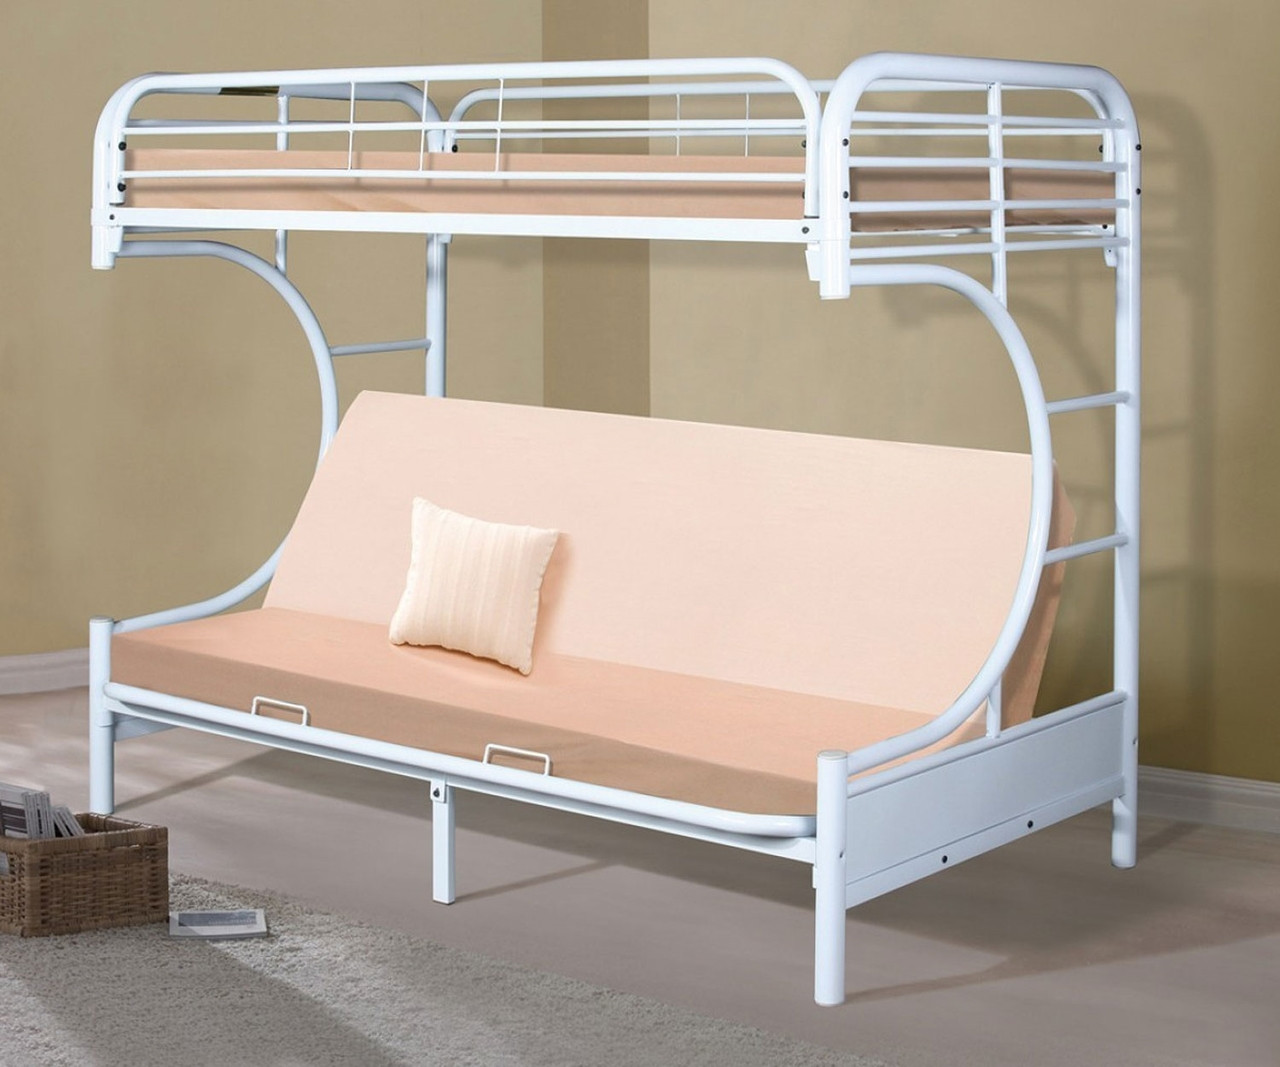 Metal C Shaped Futon Bunk Bed In White Finish 4509 3wh Donco